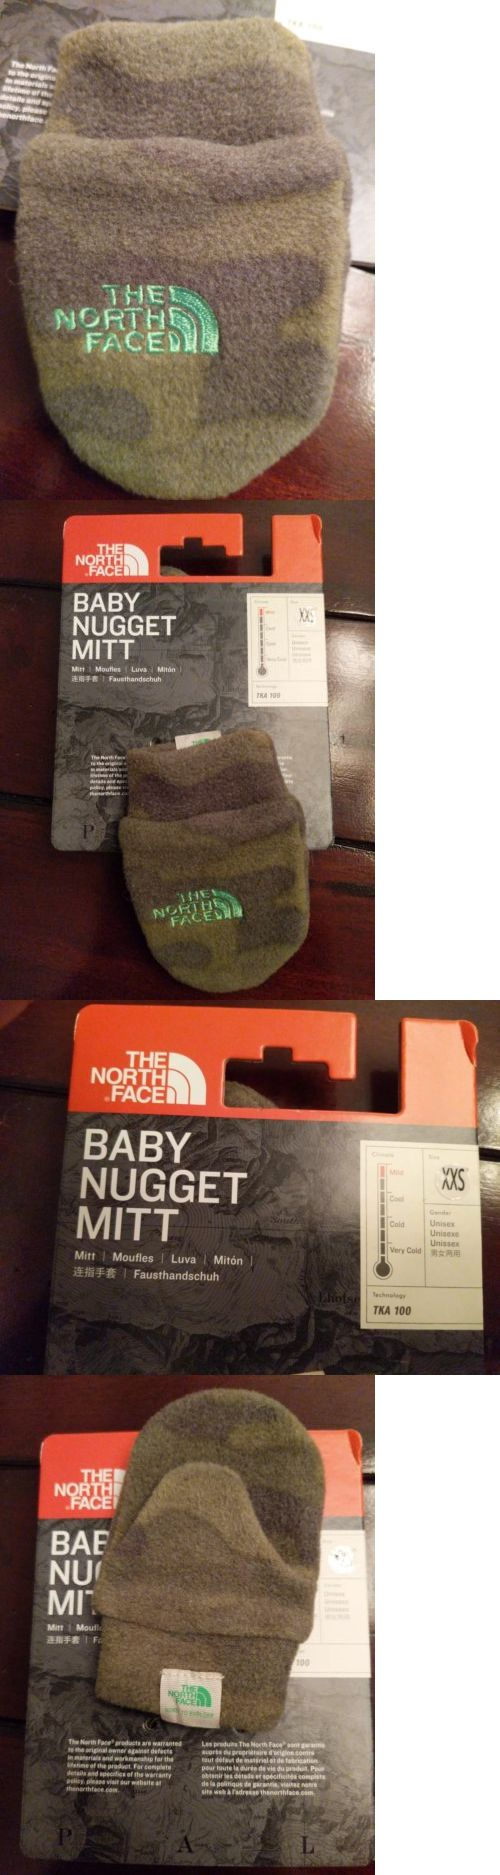 3e1501b79 The North Face Baby Nugget Mitt Mittens XXS NWT camouflage camo ...